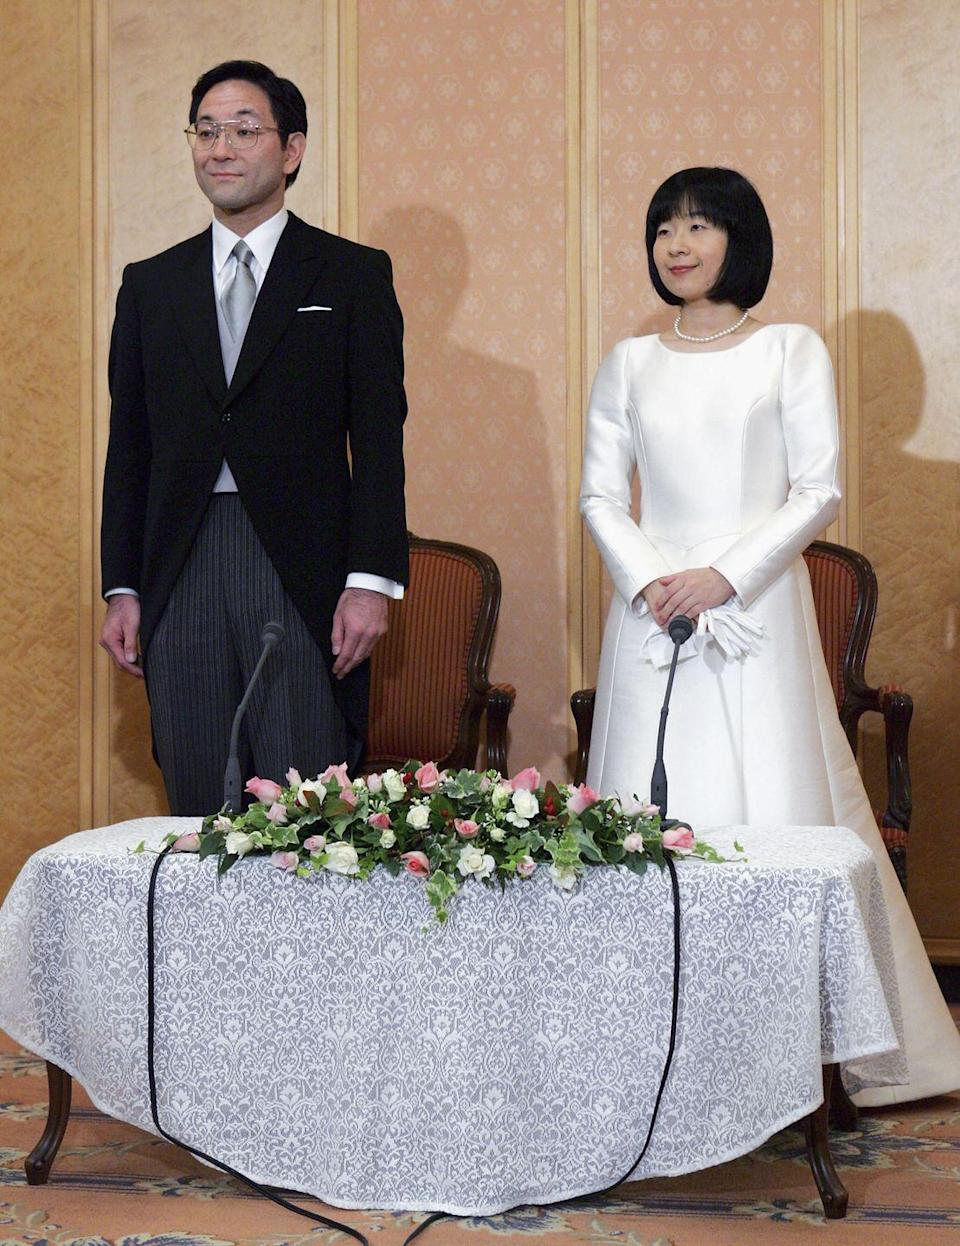 """<p>When she was 36, Princess Nori of Japan left the hereditary monarchy behind when she married a commoner, businessman Yoshiki Kuroda. Per <a href=""""https://www.independent.co.uk/news/world/asia/princess-nori-of-japan-begins-new-life-as-plain-mrs-kuroda-515521.html"""" rel=""""nofollow noopener"""" target=""""_blank"""" data-ylk=""""slk:The Independent"""" class=""""link rapid-noclick-resp""""><em>The Independent</em></a>, """"Emperor Akihito's only daughter took with her a chest of drawers and a table from Tokyo's Imperial Palace, and a £700,000 one-off state payment to help smooth the passage to her new life."""" Meanwhile, <em><a href=""""https://www.telegraph.co.uk/news/worldnews/asia/japan/1476692/Japanese-princess-to-marry-the-best-friend-of-her-brother.html"""" rel=""""nofollow noopener"""" target=""""_blank"""" data-ylk=""""slk:The Telegraph"""" class=""""link rapid-noclick-resp"""">The Telegraph</a></em> reported, """"One possible reason for Princess Sayako's late marriage is that under Japanese law she will lose her royal status on marriage and become a commoner.""""</p>"""